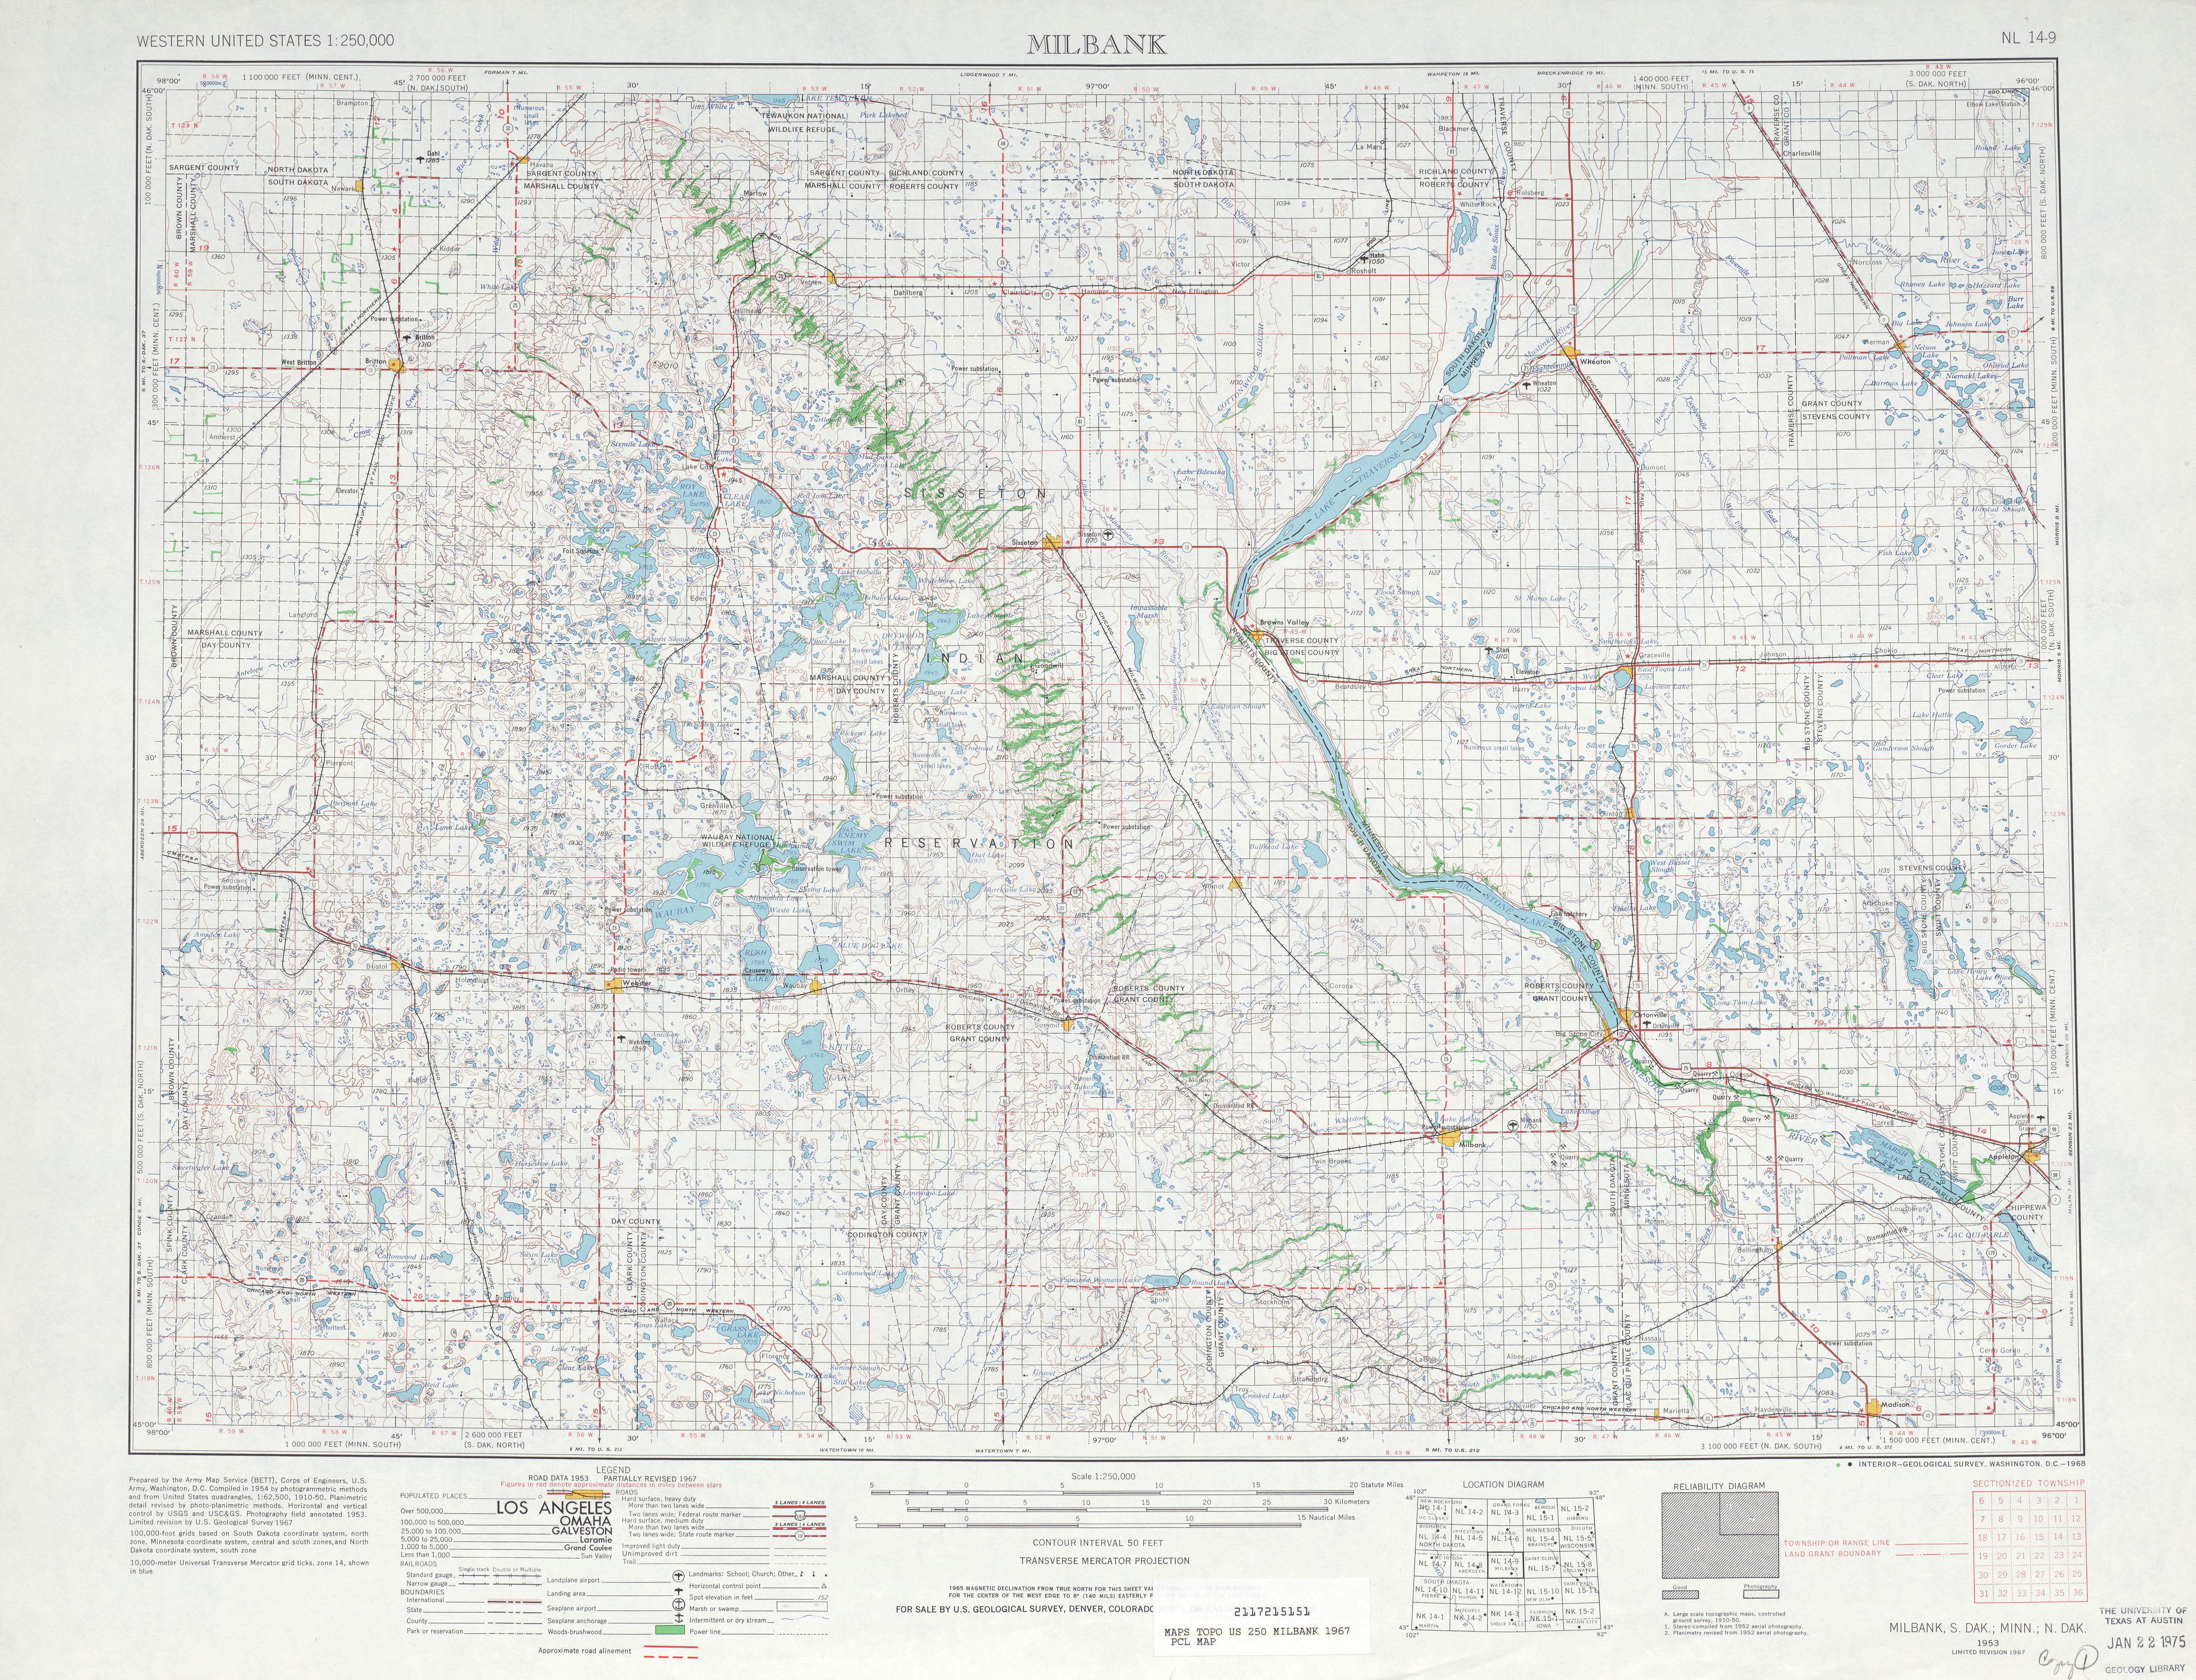 Milbank Topographic Map Sheet, United States 1967